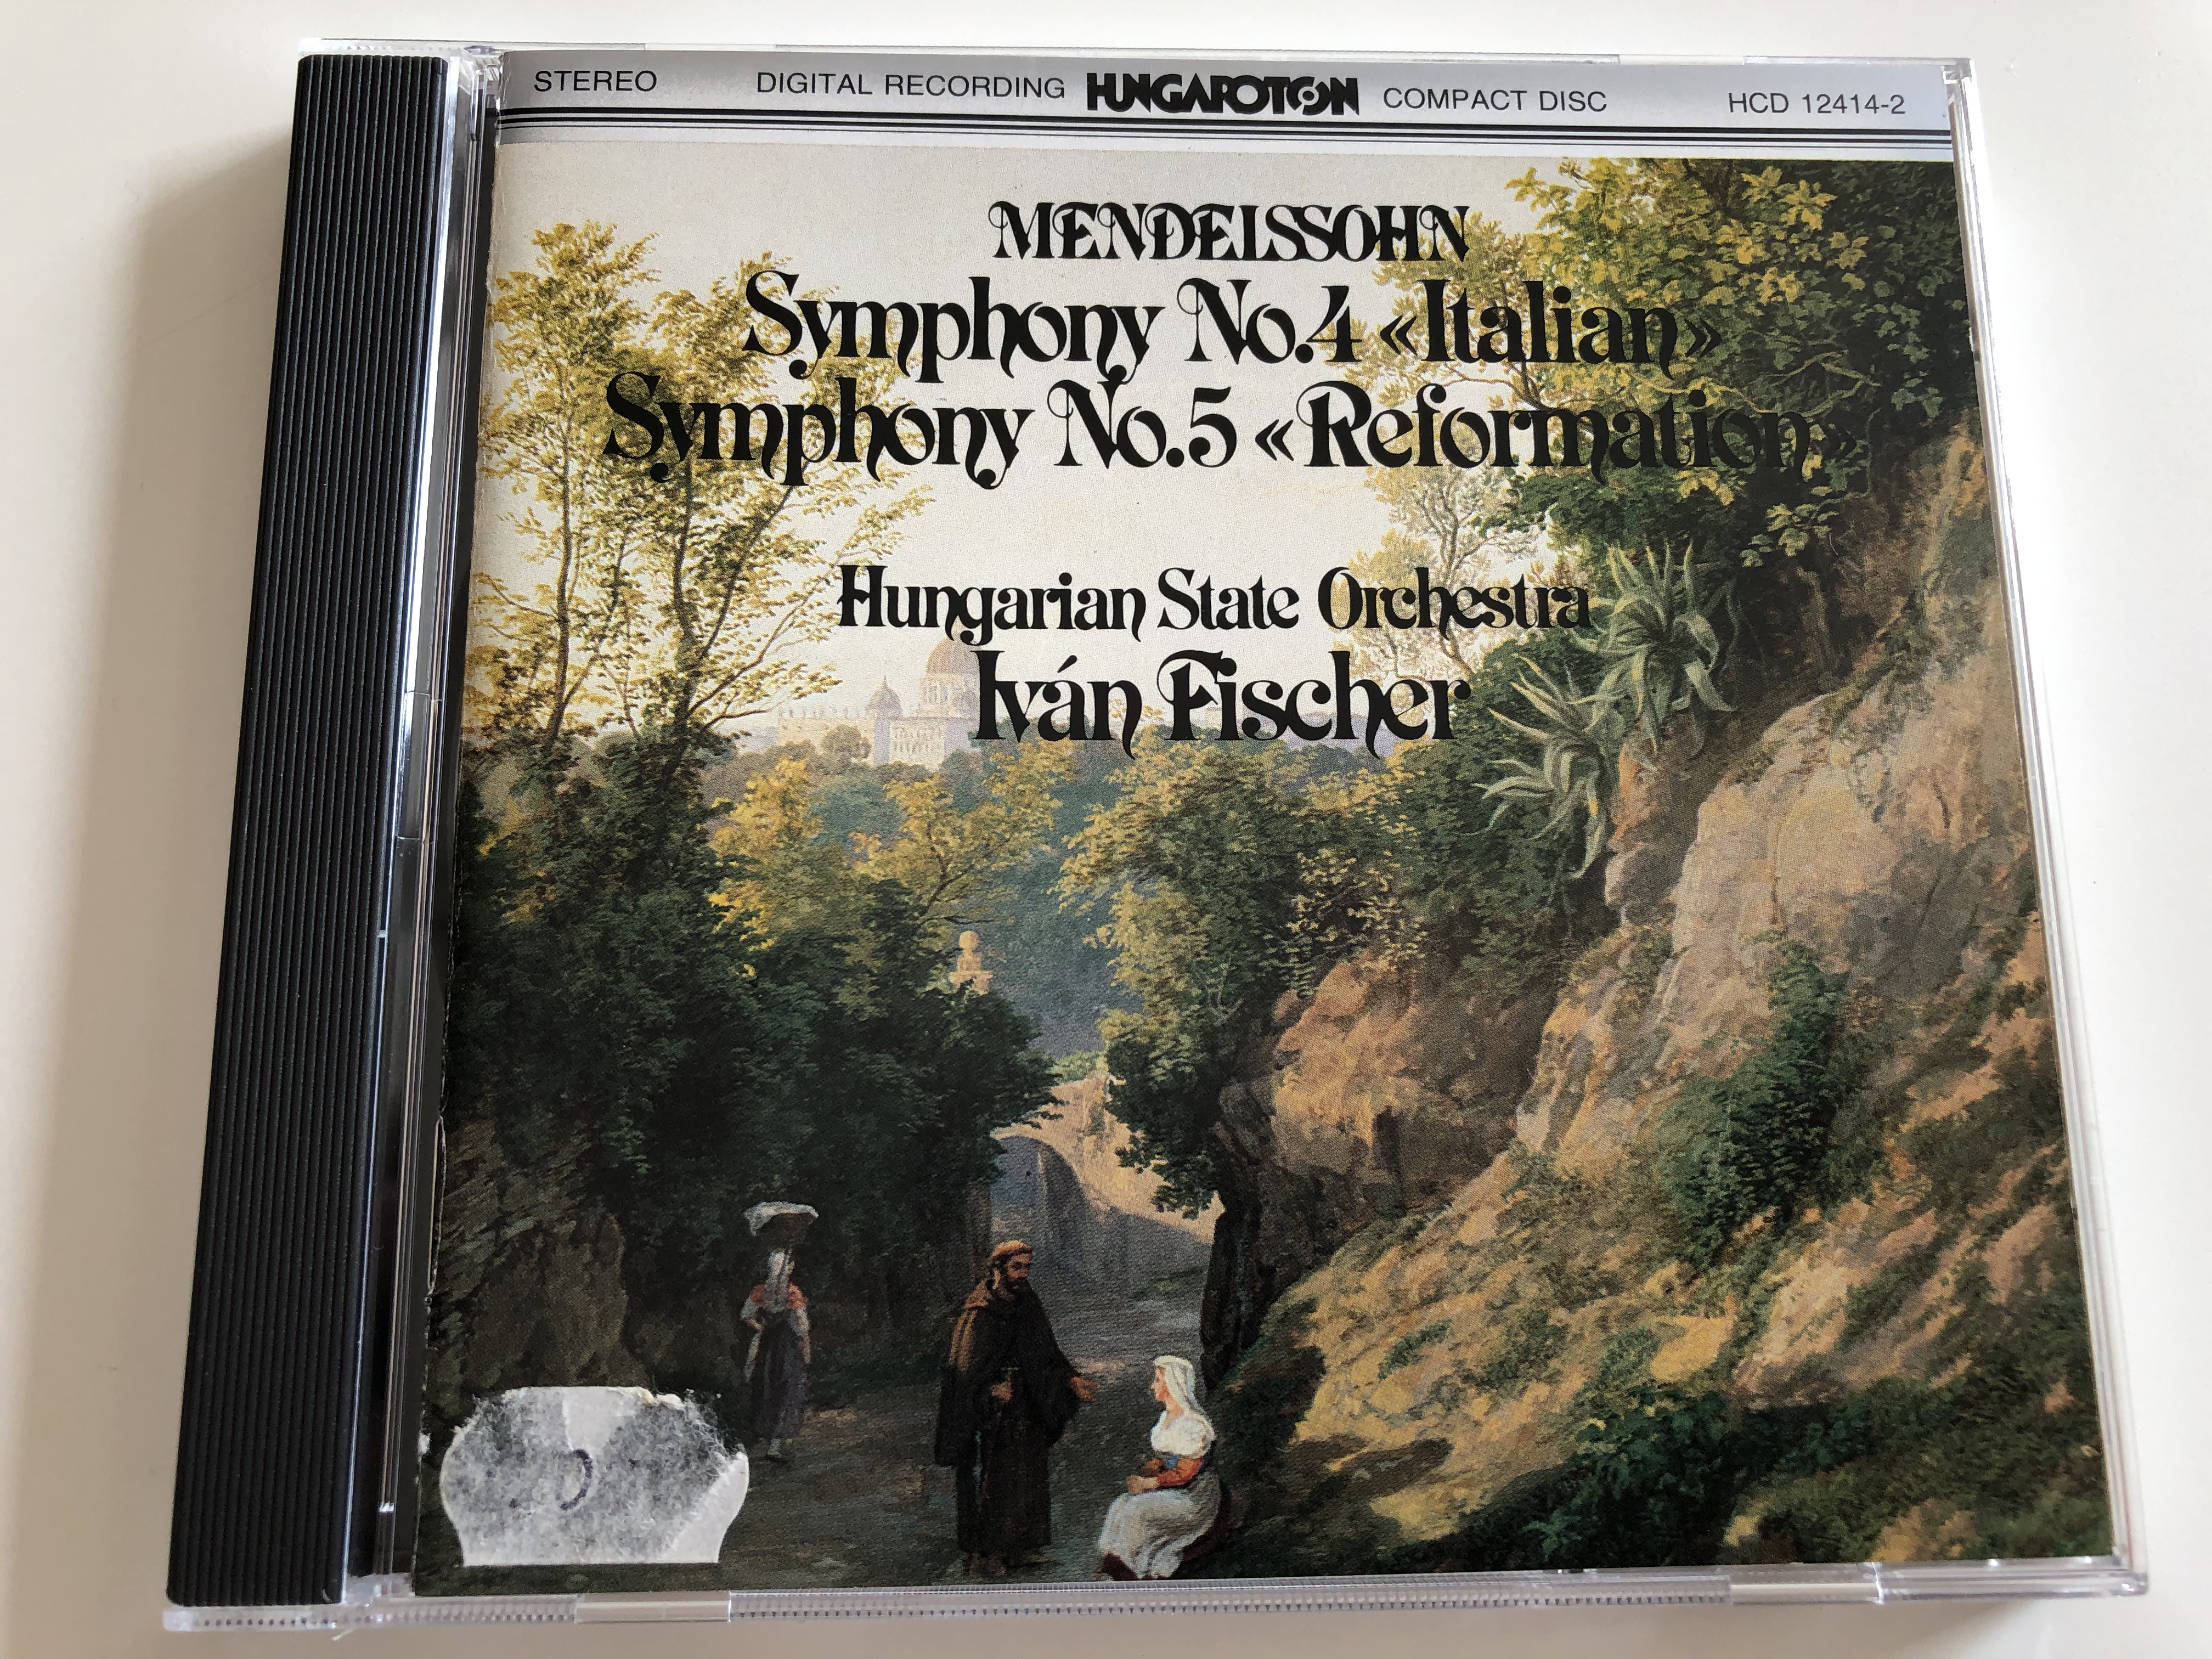 mendelssohn-symphony-no.-4-italian-symphony-no.-5-reformation-hungarian-state-orchestra-conducted-by-iv-n-fischer-hungaroton-audio-cd-1983-hcd-12414-2-1-.jpg